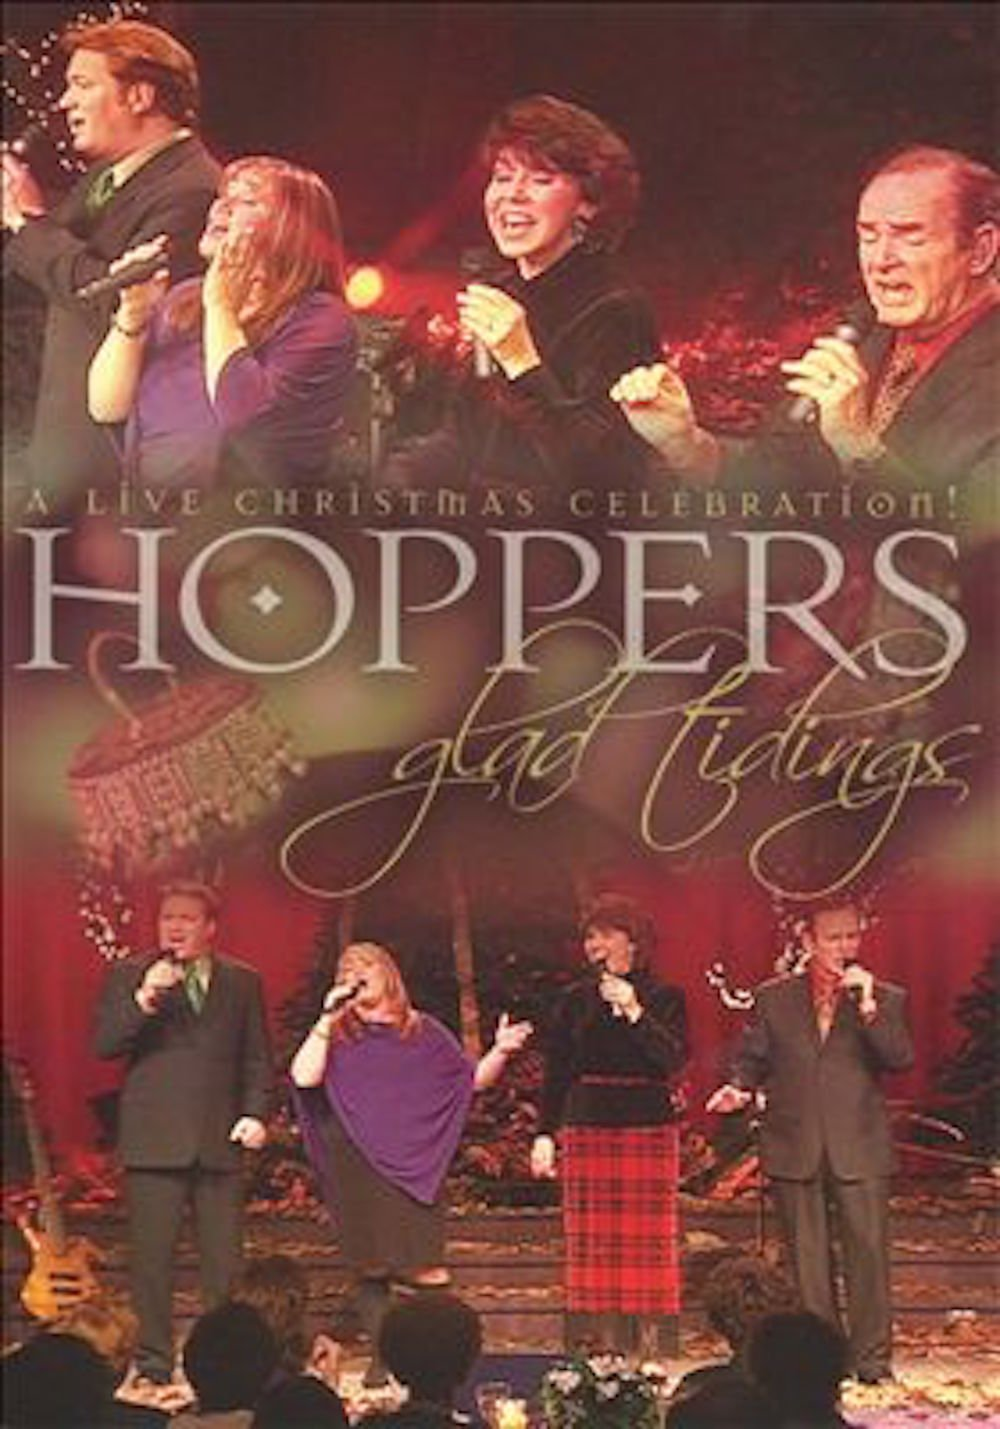 The Hoppers: Glad Tidings - A Live Christmas Celebration by Crossroads Records